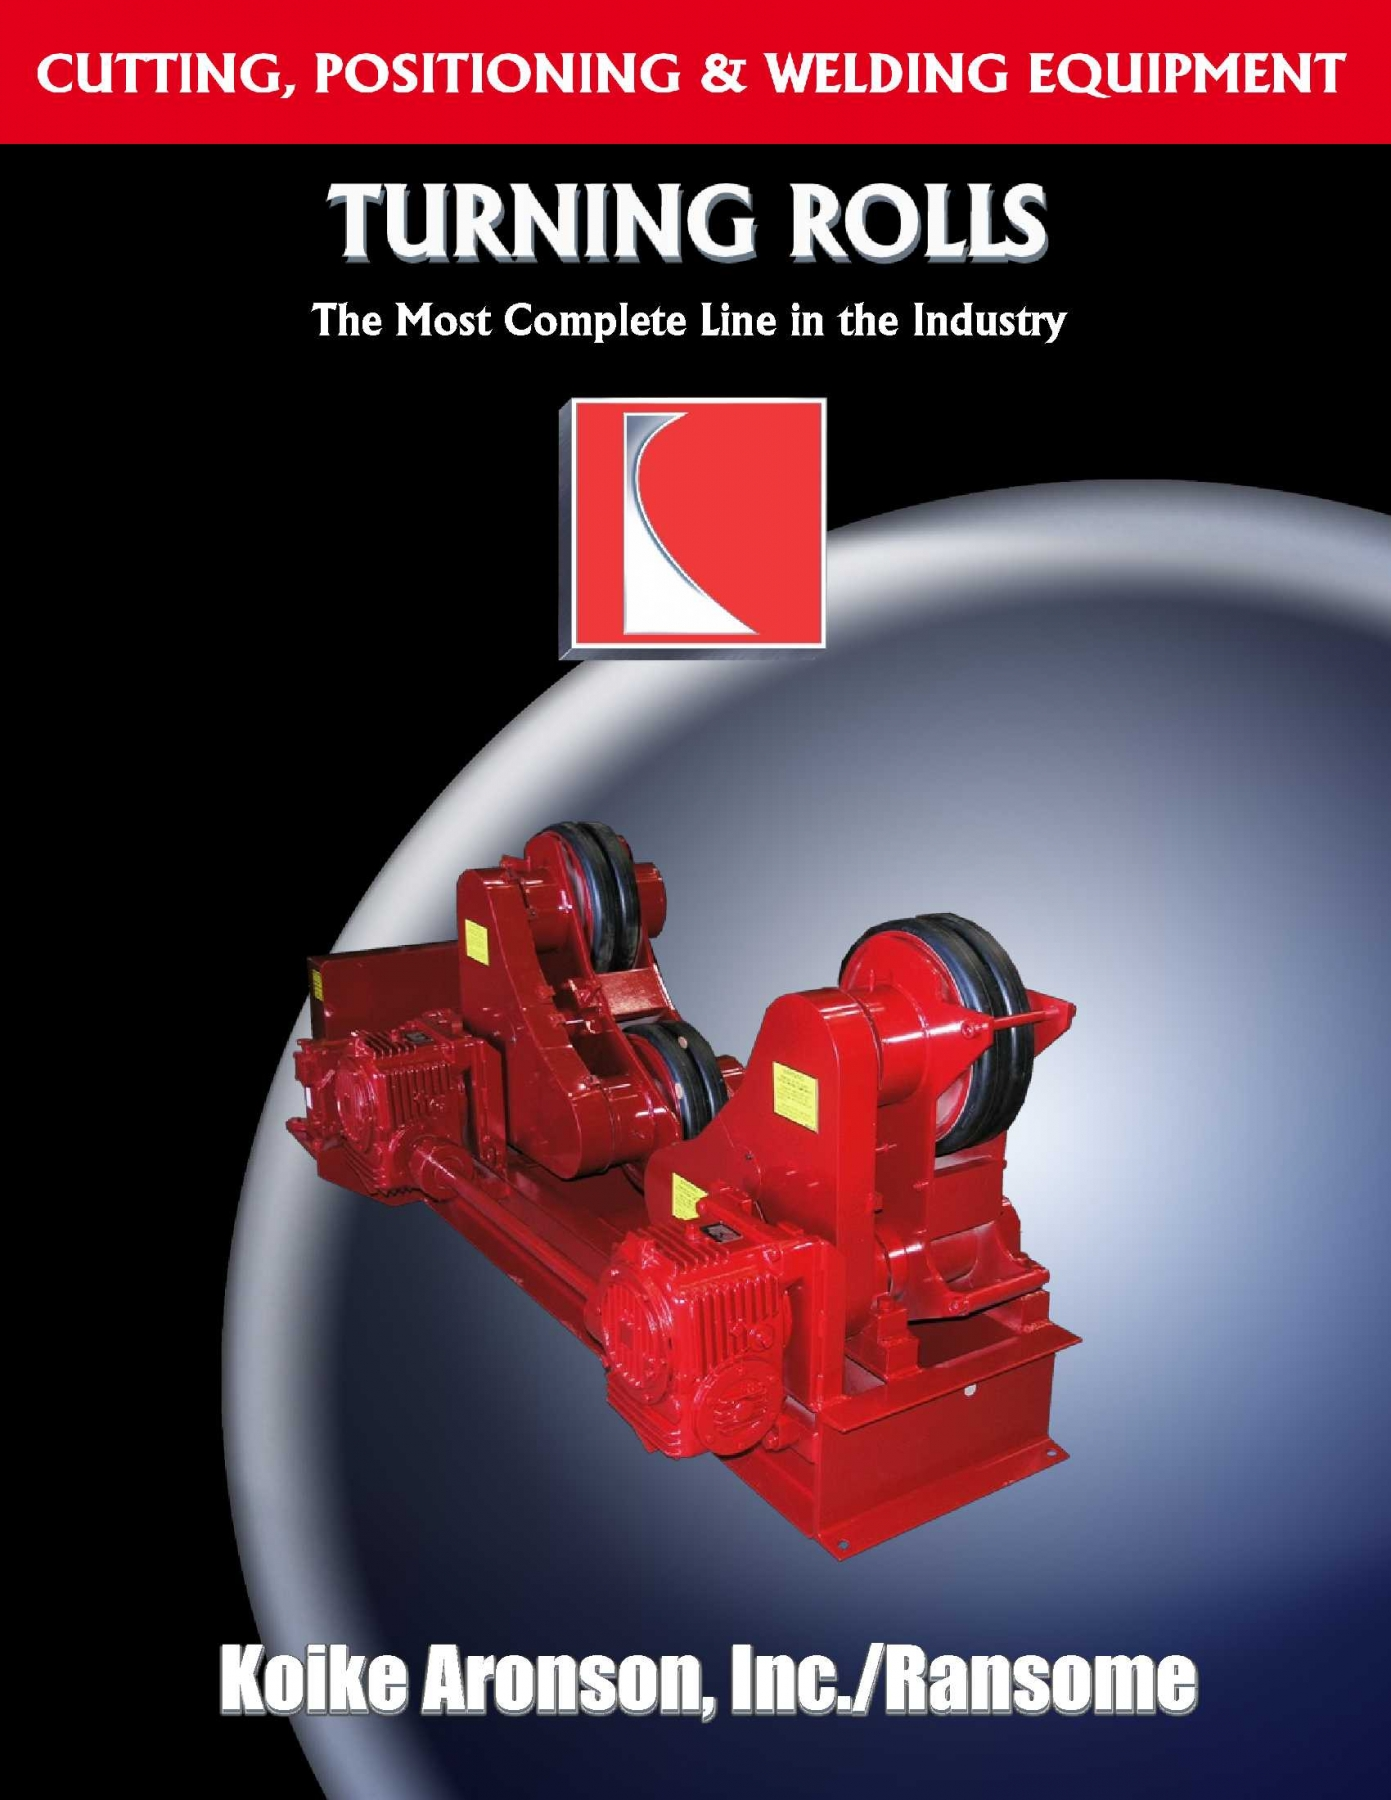 Turning Rolls Product Brochure by Koike Aronson